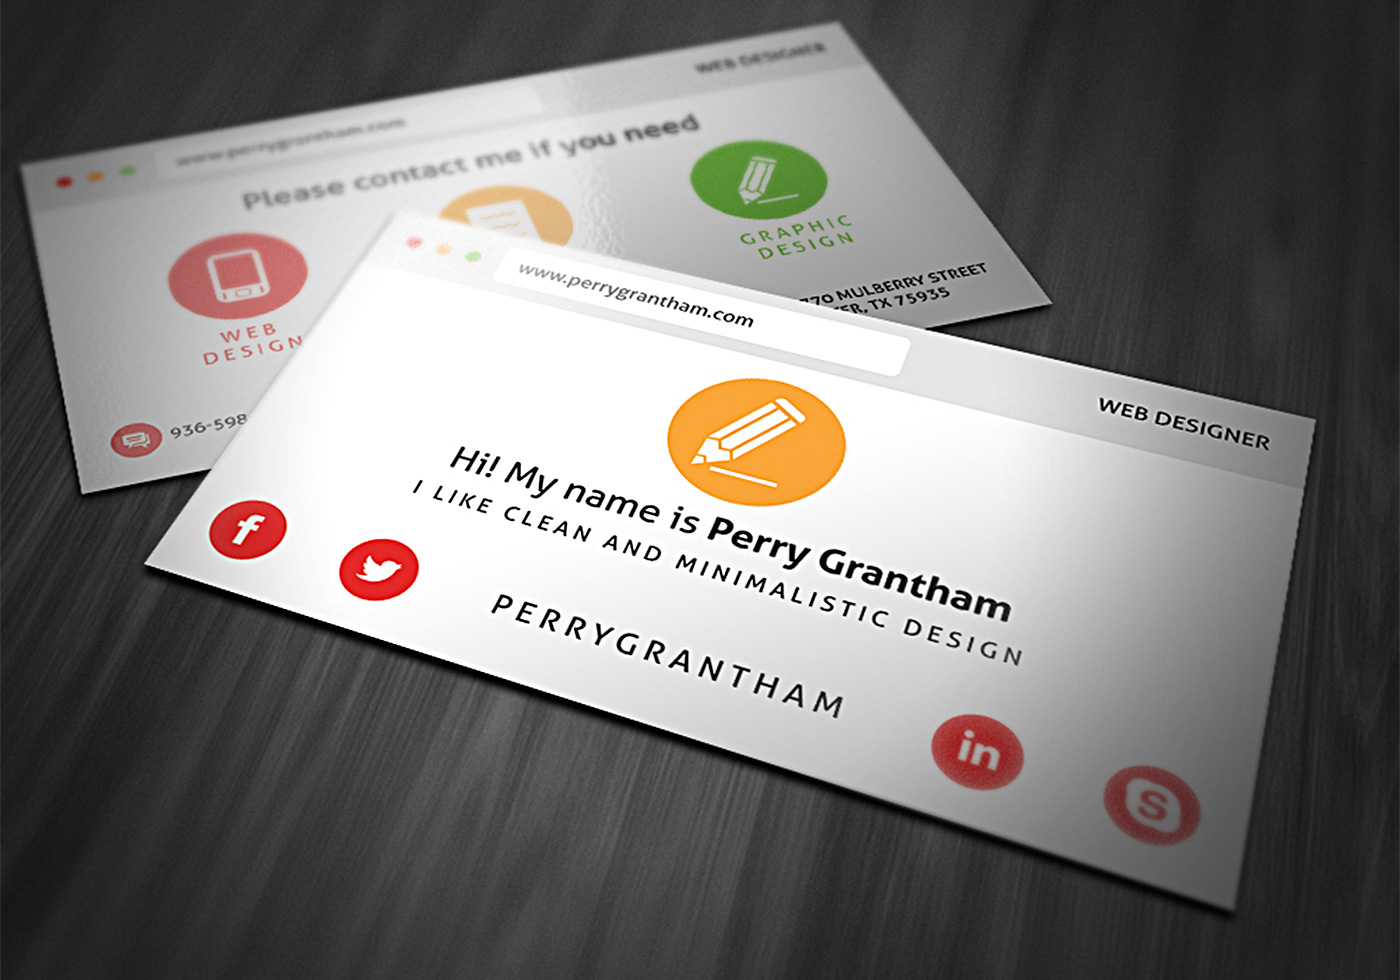 Bright Business Card PSD Template - Free Photoshop Brushes at Brusheezy!